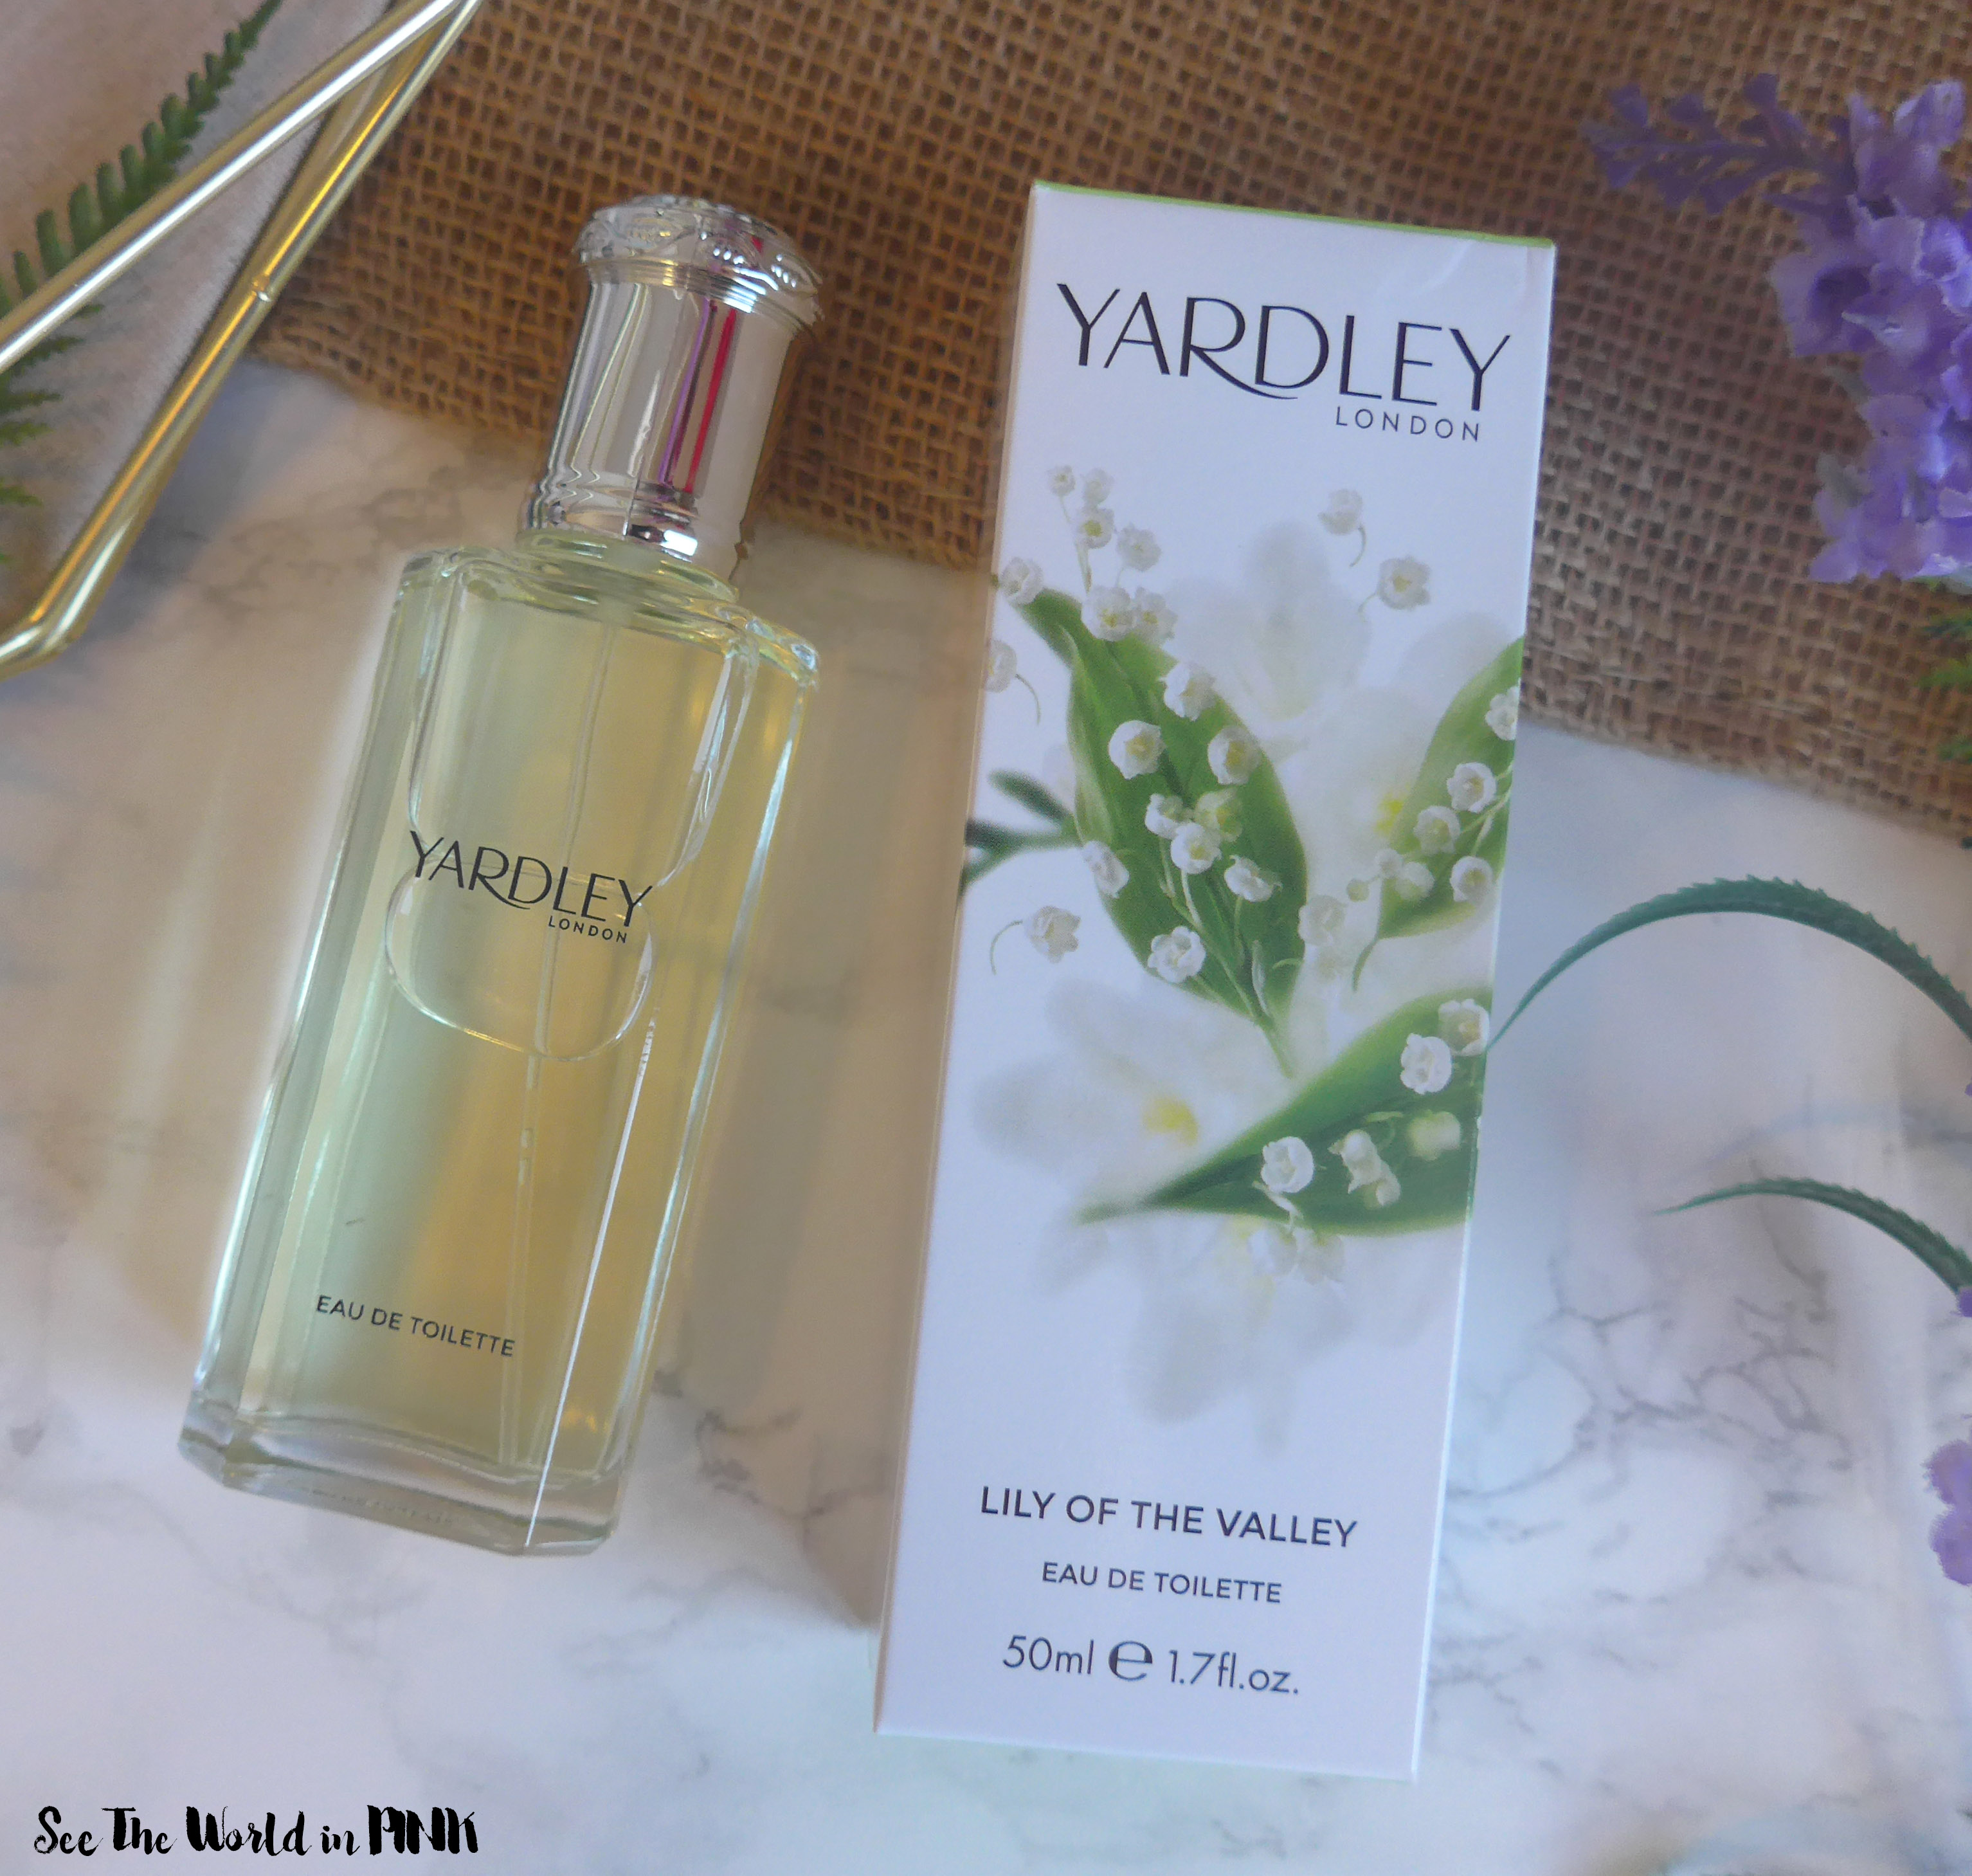 Yardley Lily of the Valley